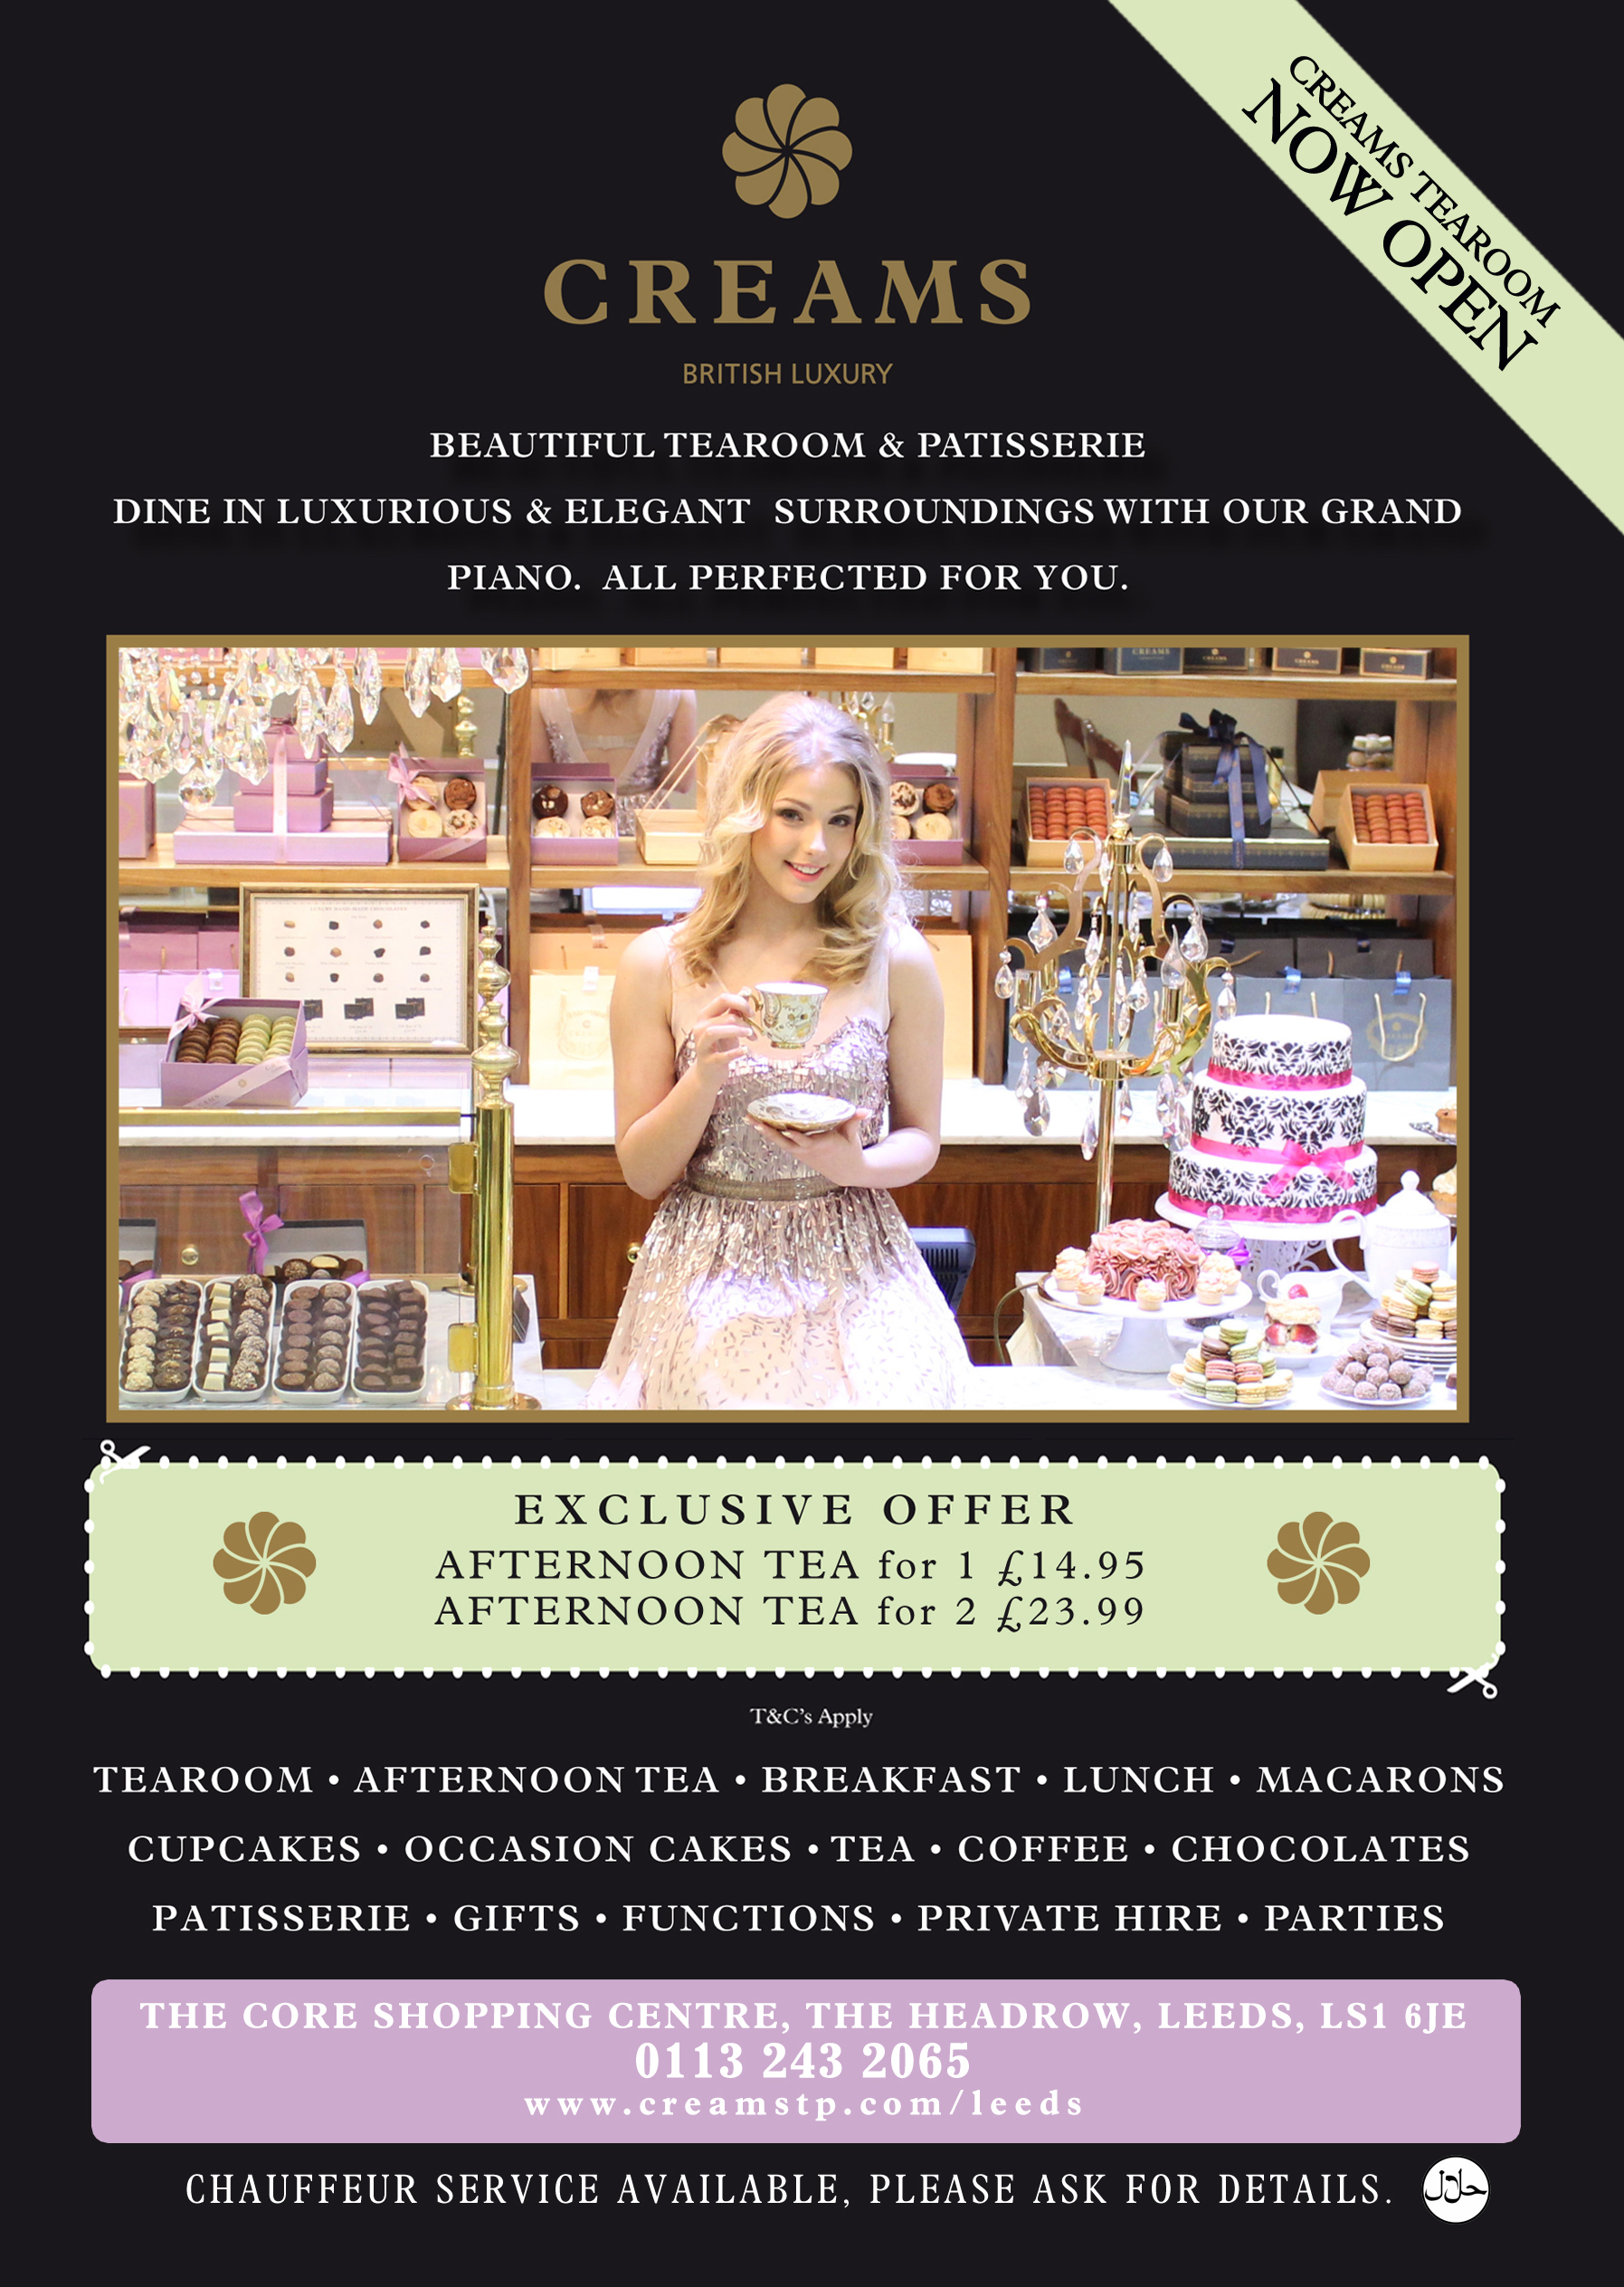 creams tearoom a5 front new afternoon tea offer side 2 copy